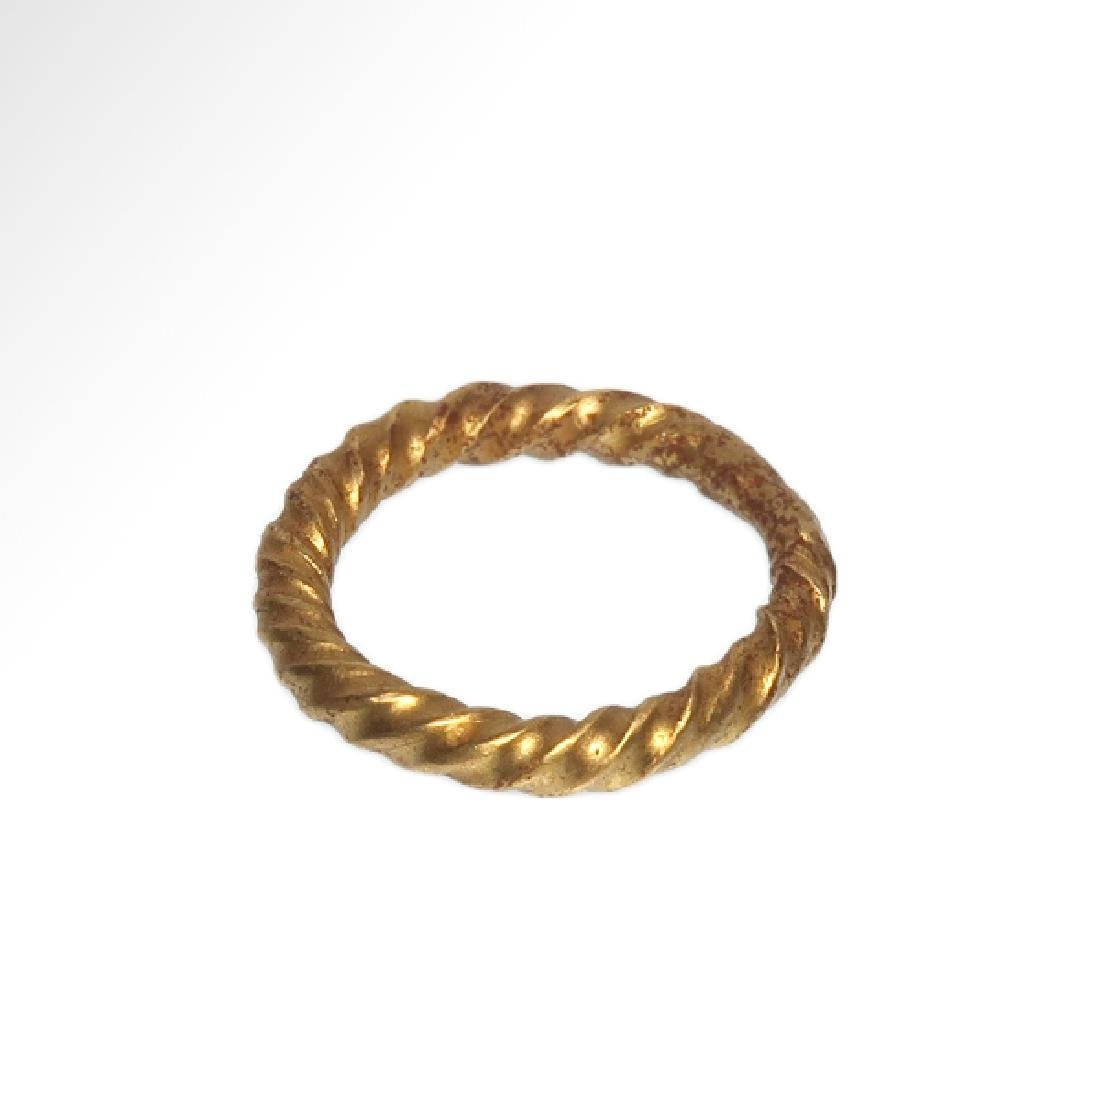 Viking Solid Gold Ring, c. 10th Century A.D. - 4